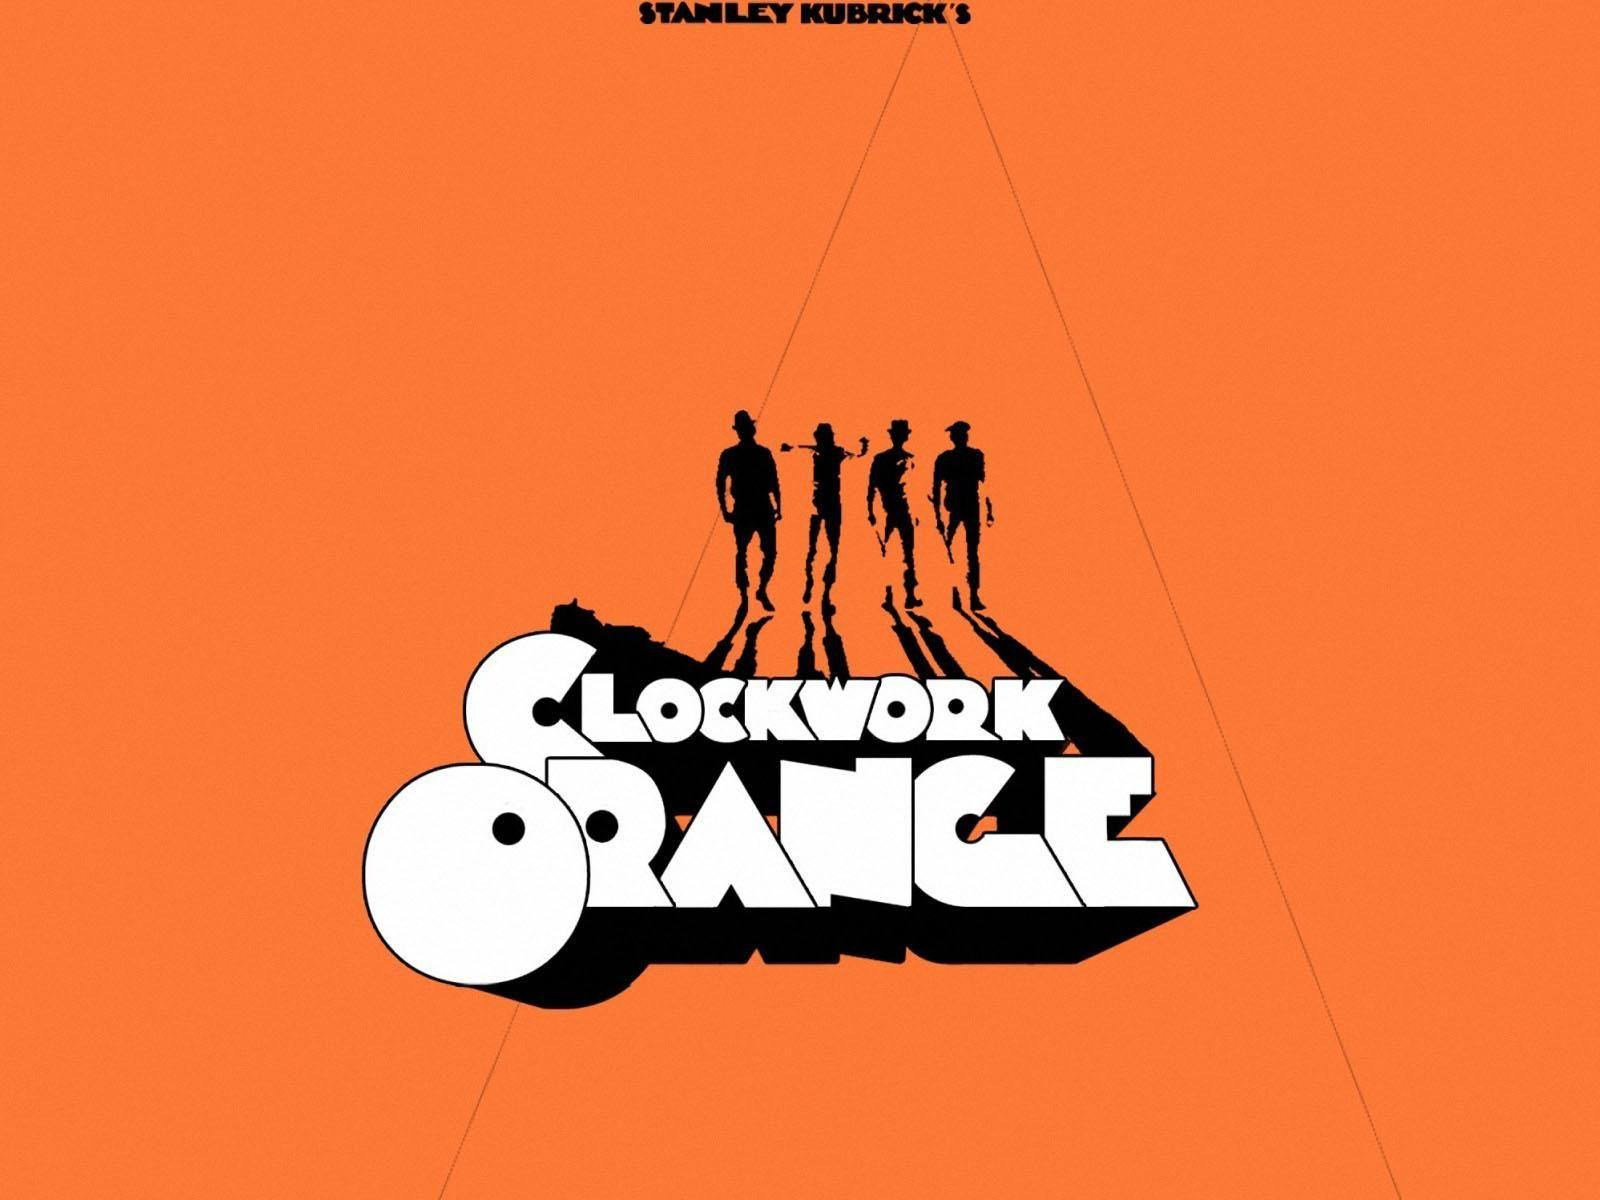 clockwork orange wallpaper Wallpapers - Free clockwork orange ...